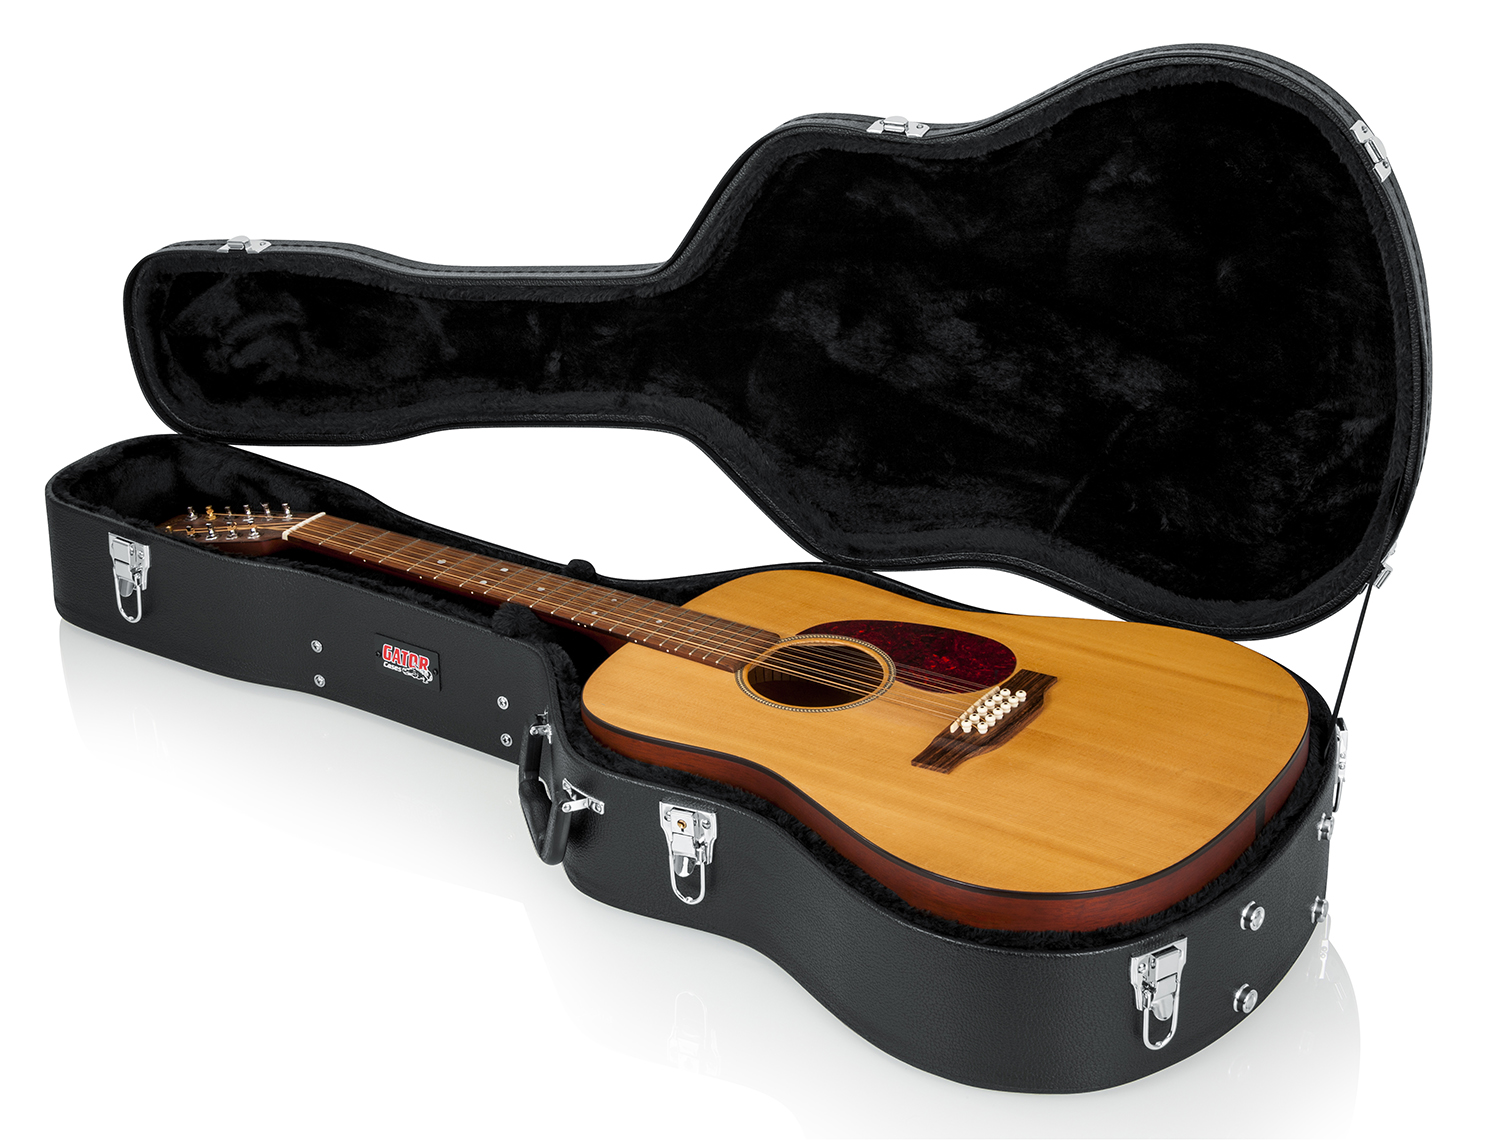 gator gwe series hardshell arched top universal acoustic guitar case ebay